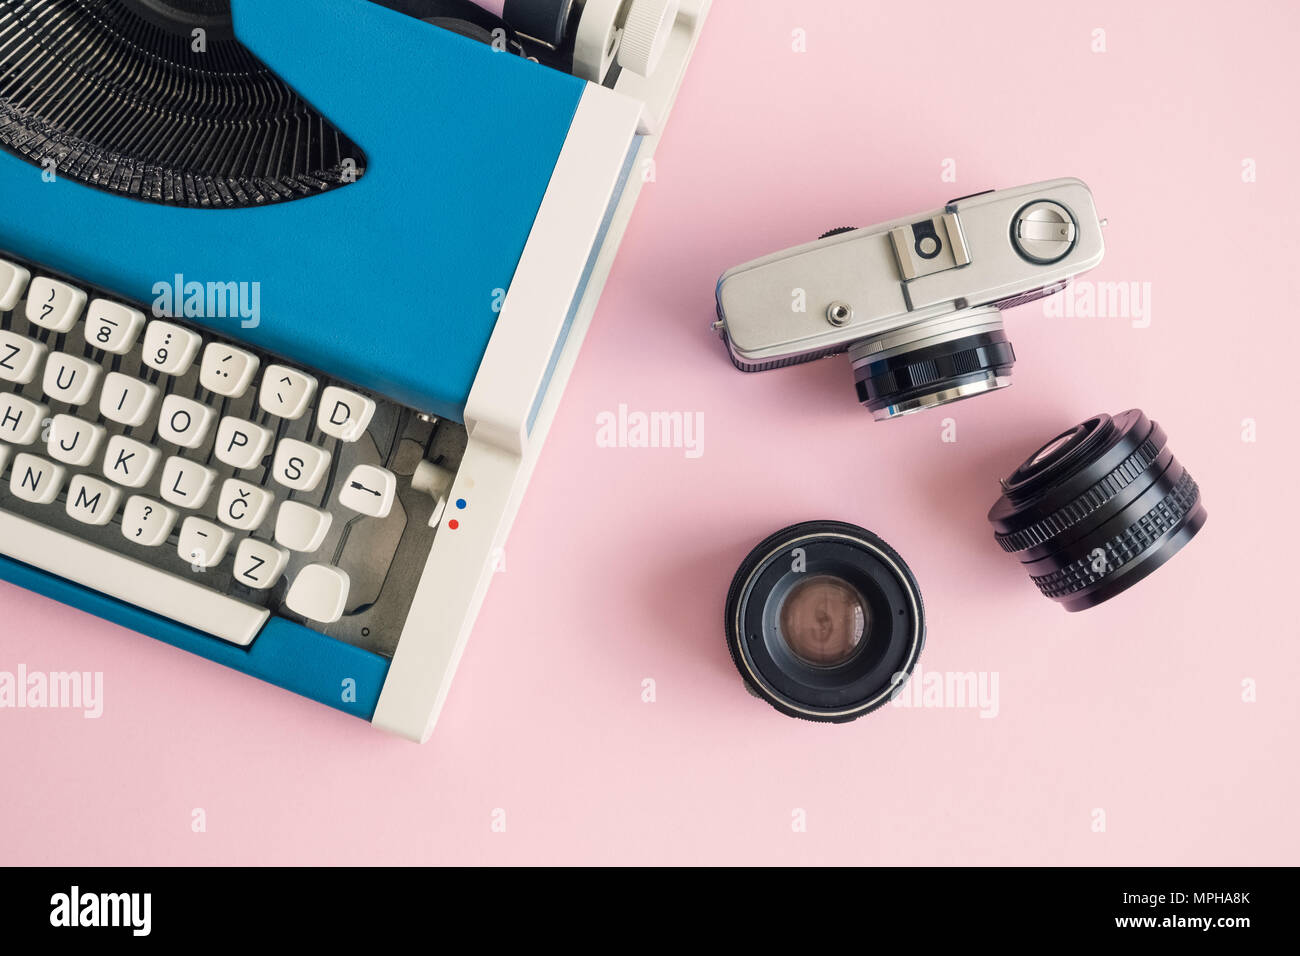 Flat Lay Of Blue Typewriter And Retro Camera With Lenses On Pastel Pink  Background Minimal Creative Concept.